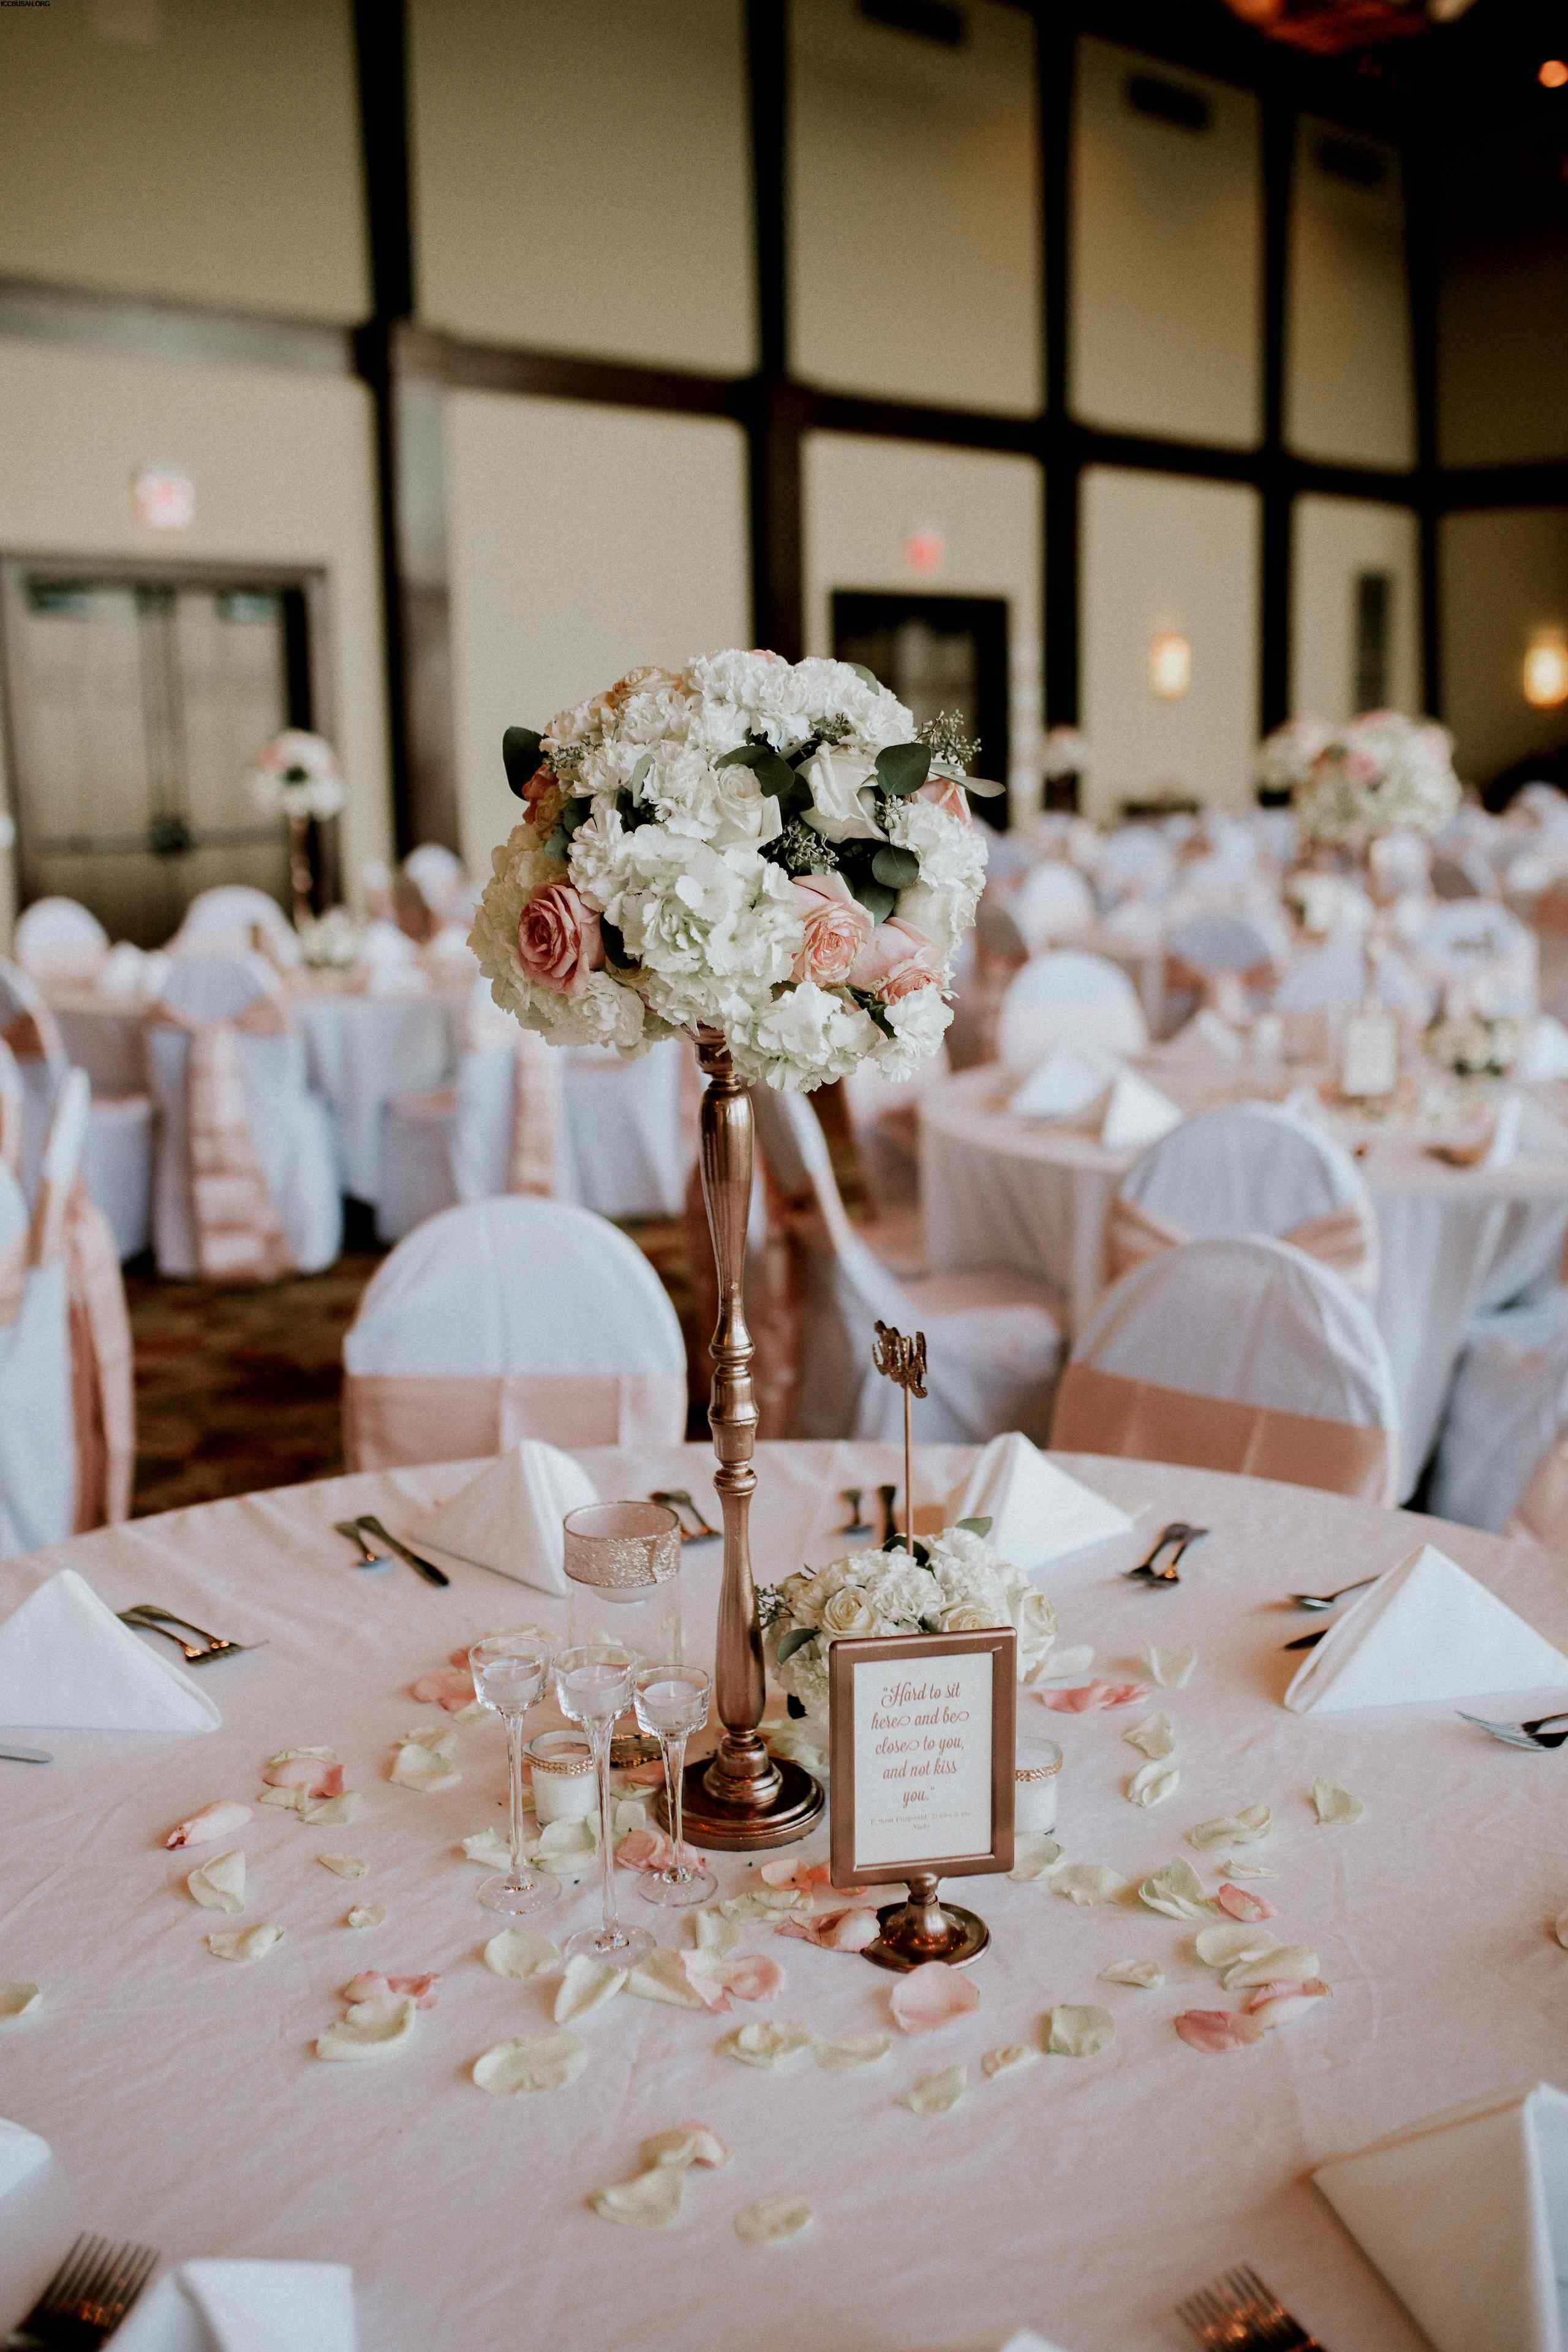 Wedding Decorations Rose Gold 36 ideas to fresh rose gold and rustic wedd…  | Wedding table settings diy, Diy wedding flower centerpieces, Silver wedding  decorations